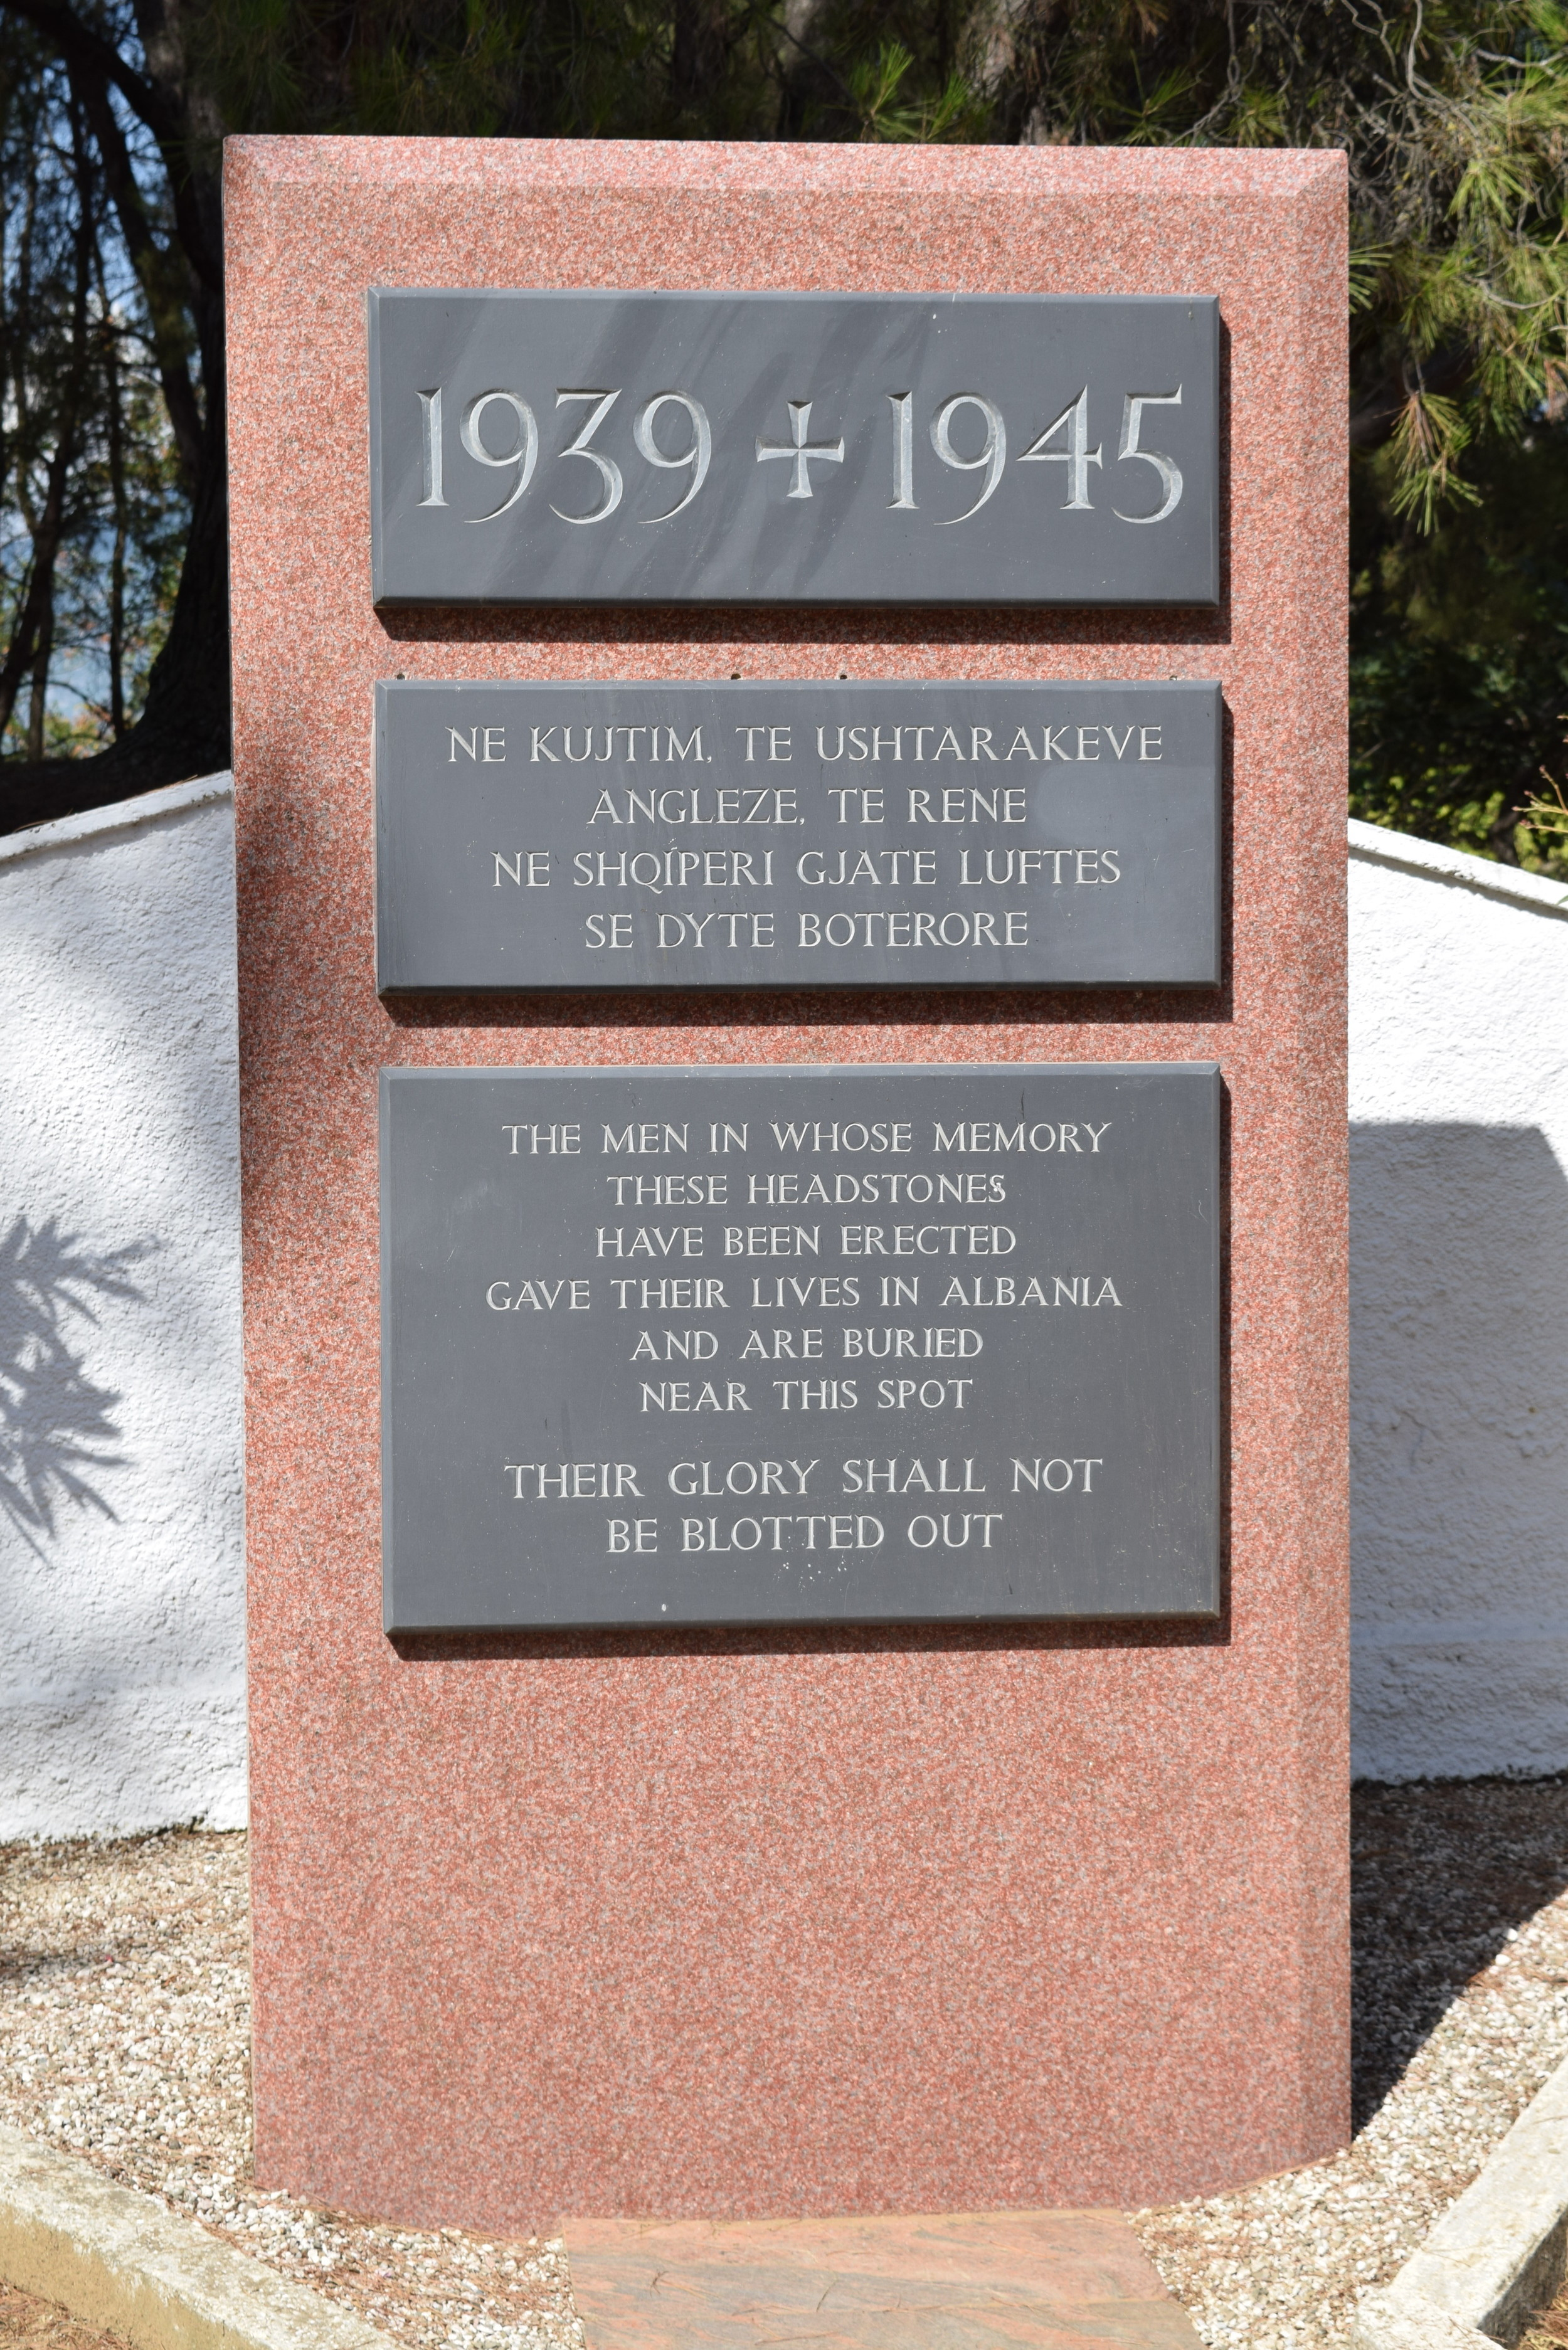 The memorial monument that was once over Enver Hoxha's grave. Notice the small holes above the middle plaque.